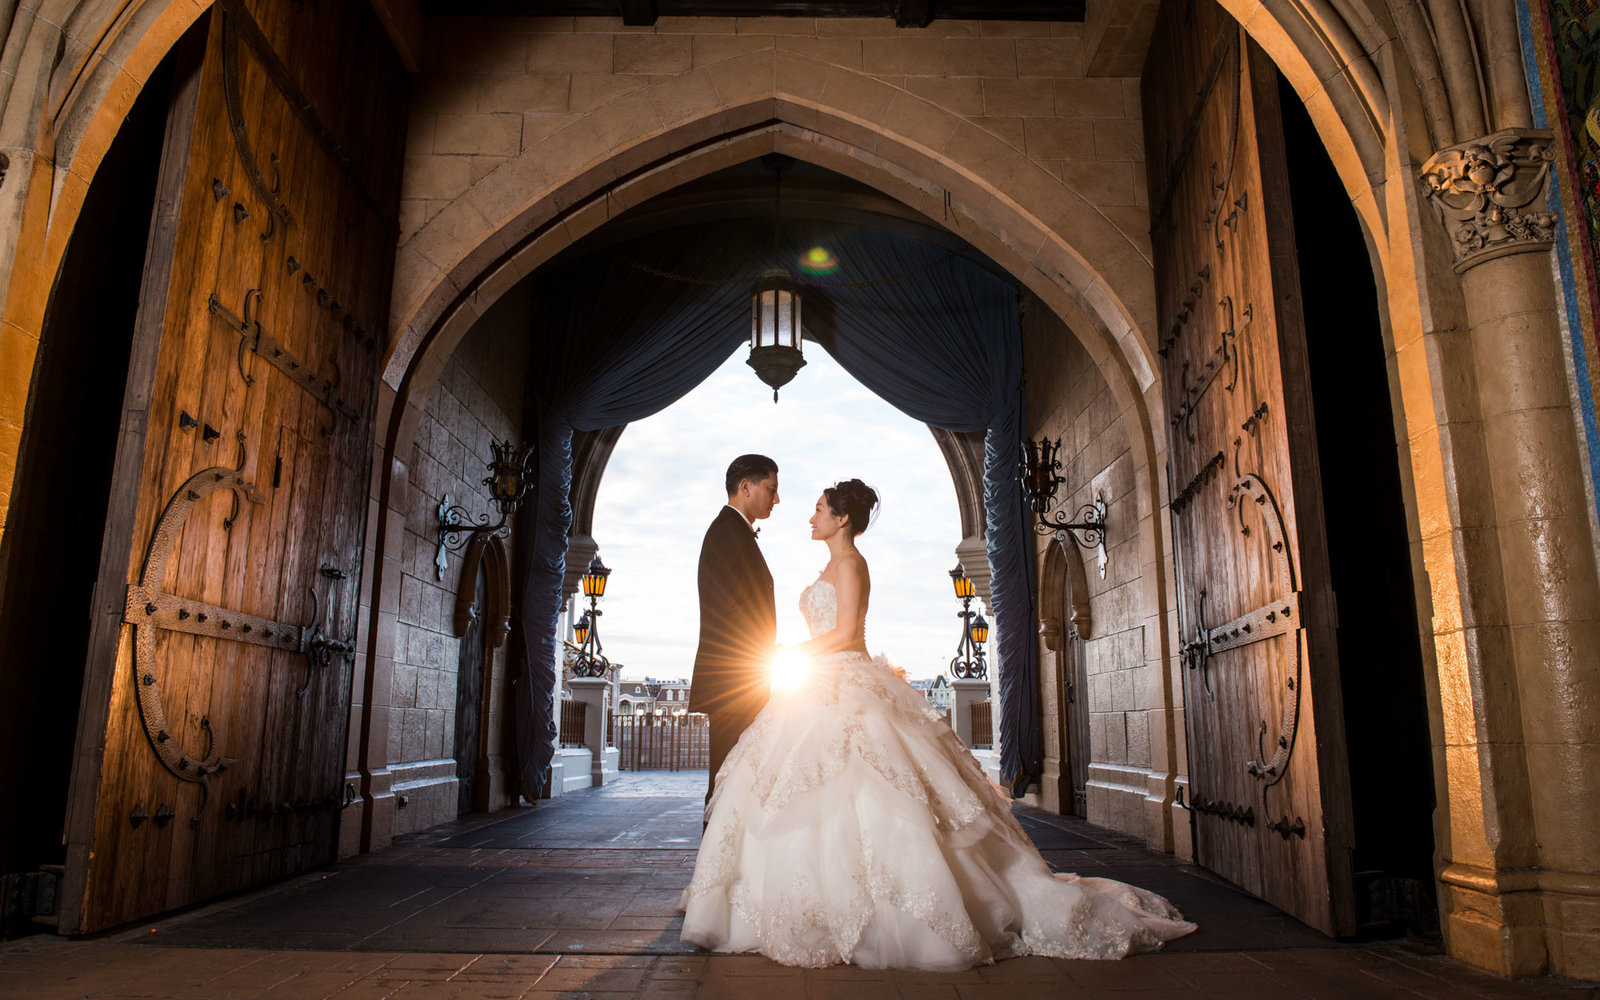 Our how-to guide for having the perfect Disney wedding. Read on.